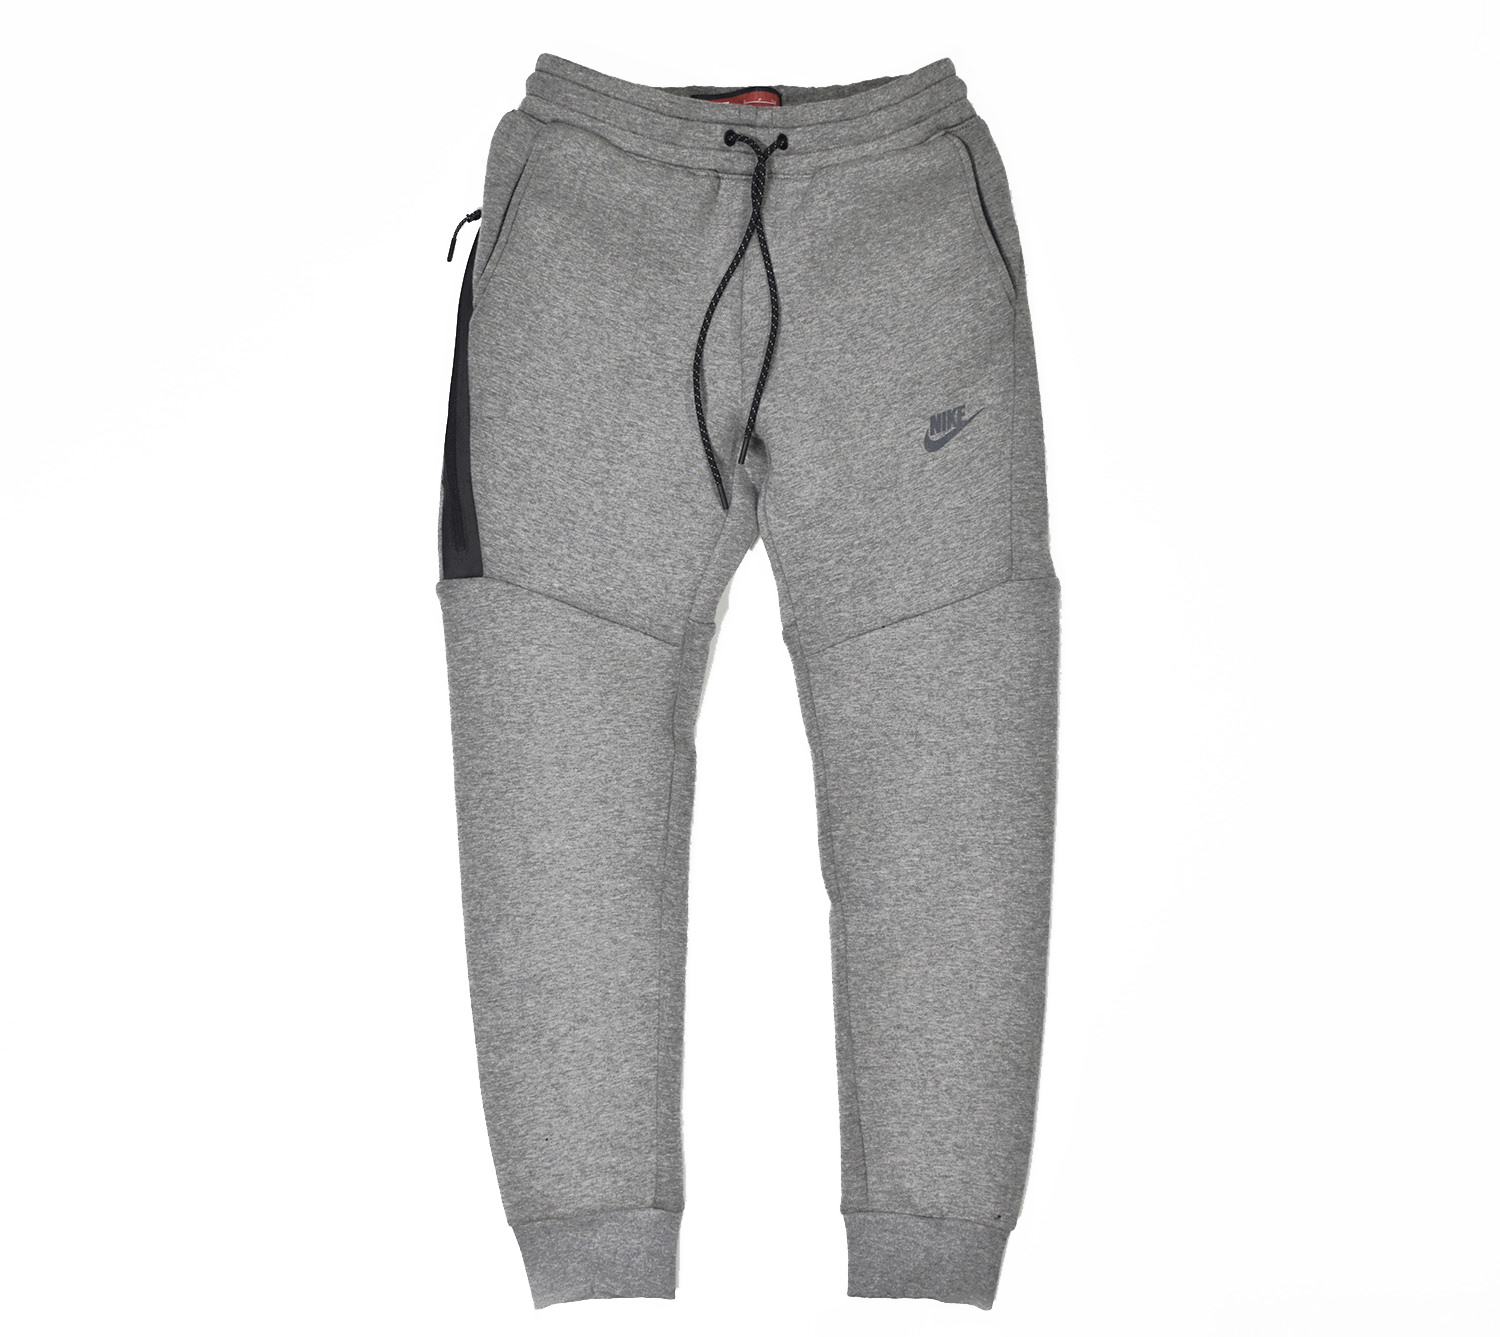 582012509ee306e06535dfc3_tech-fleece-3mm-03-1